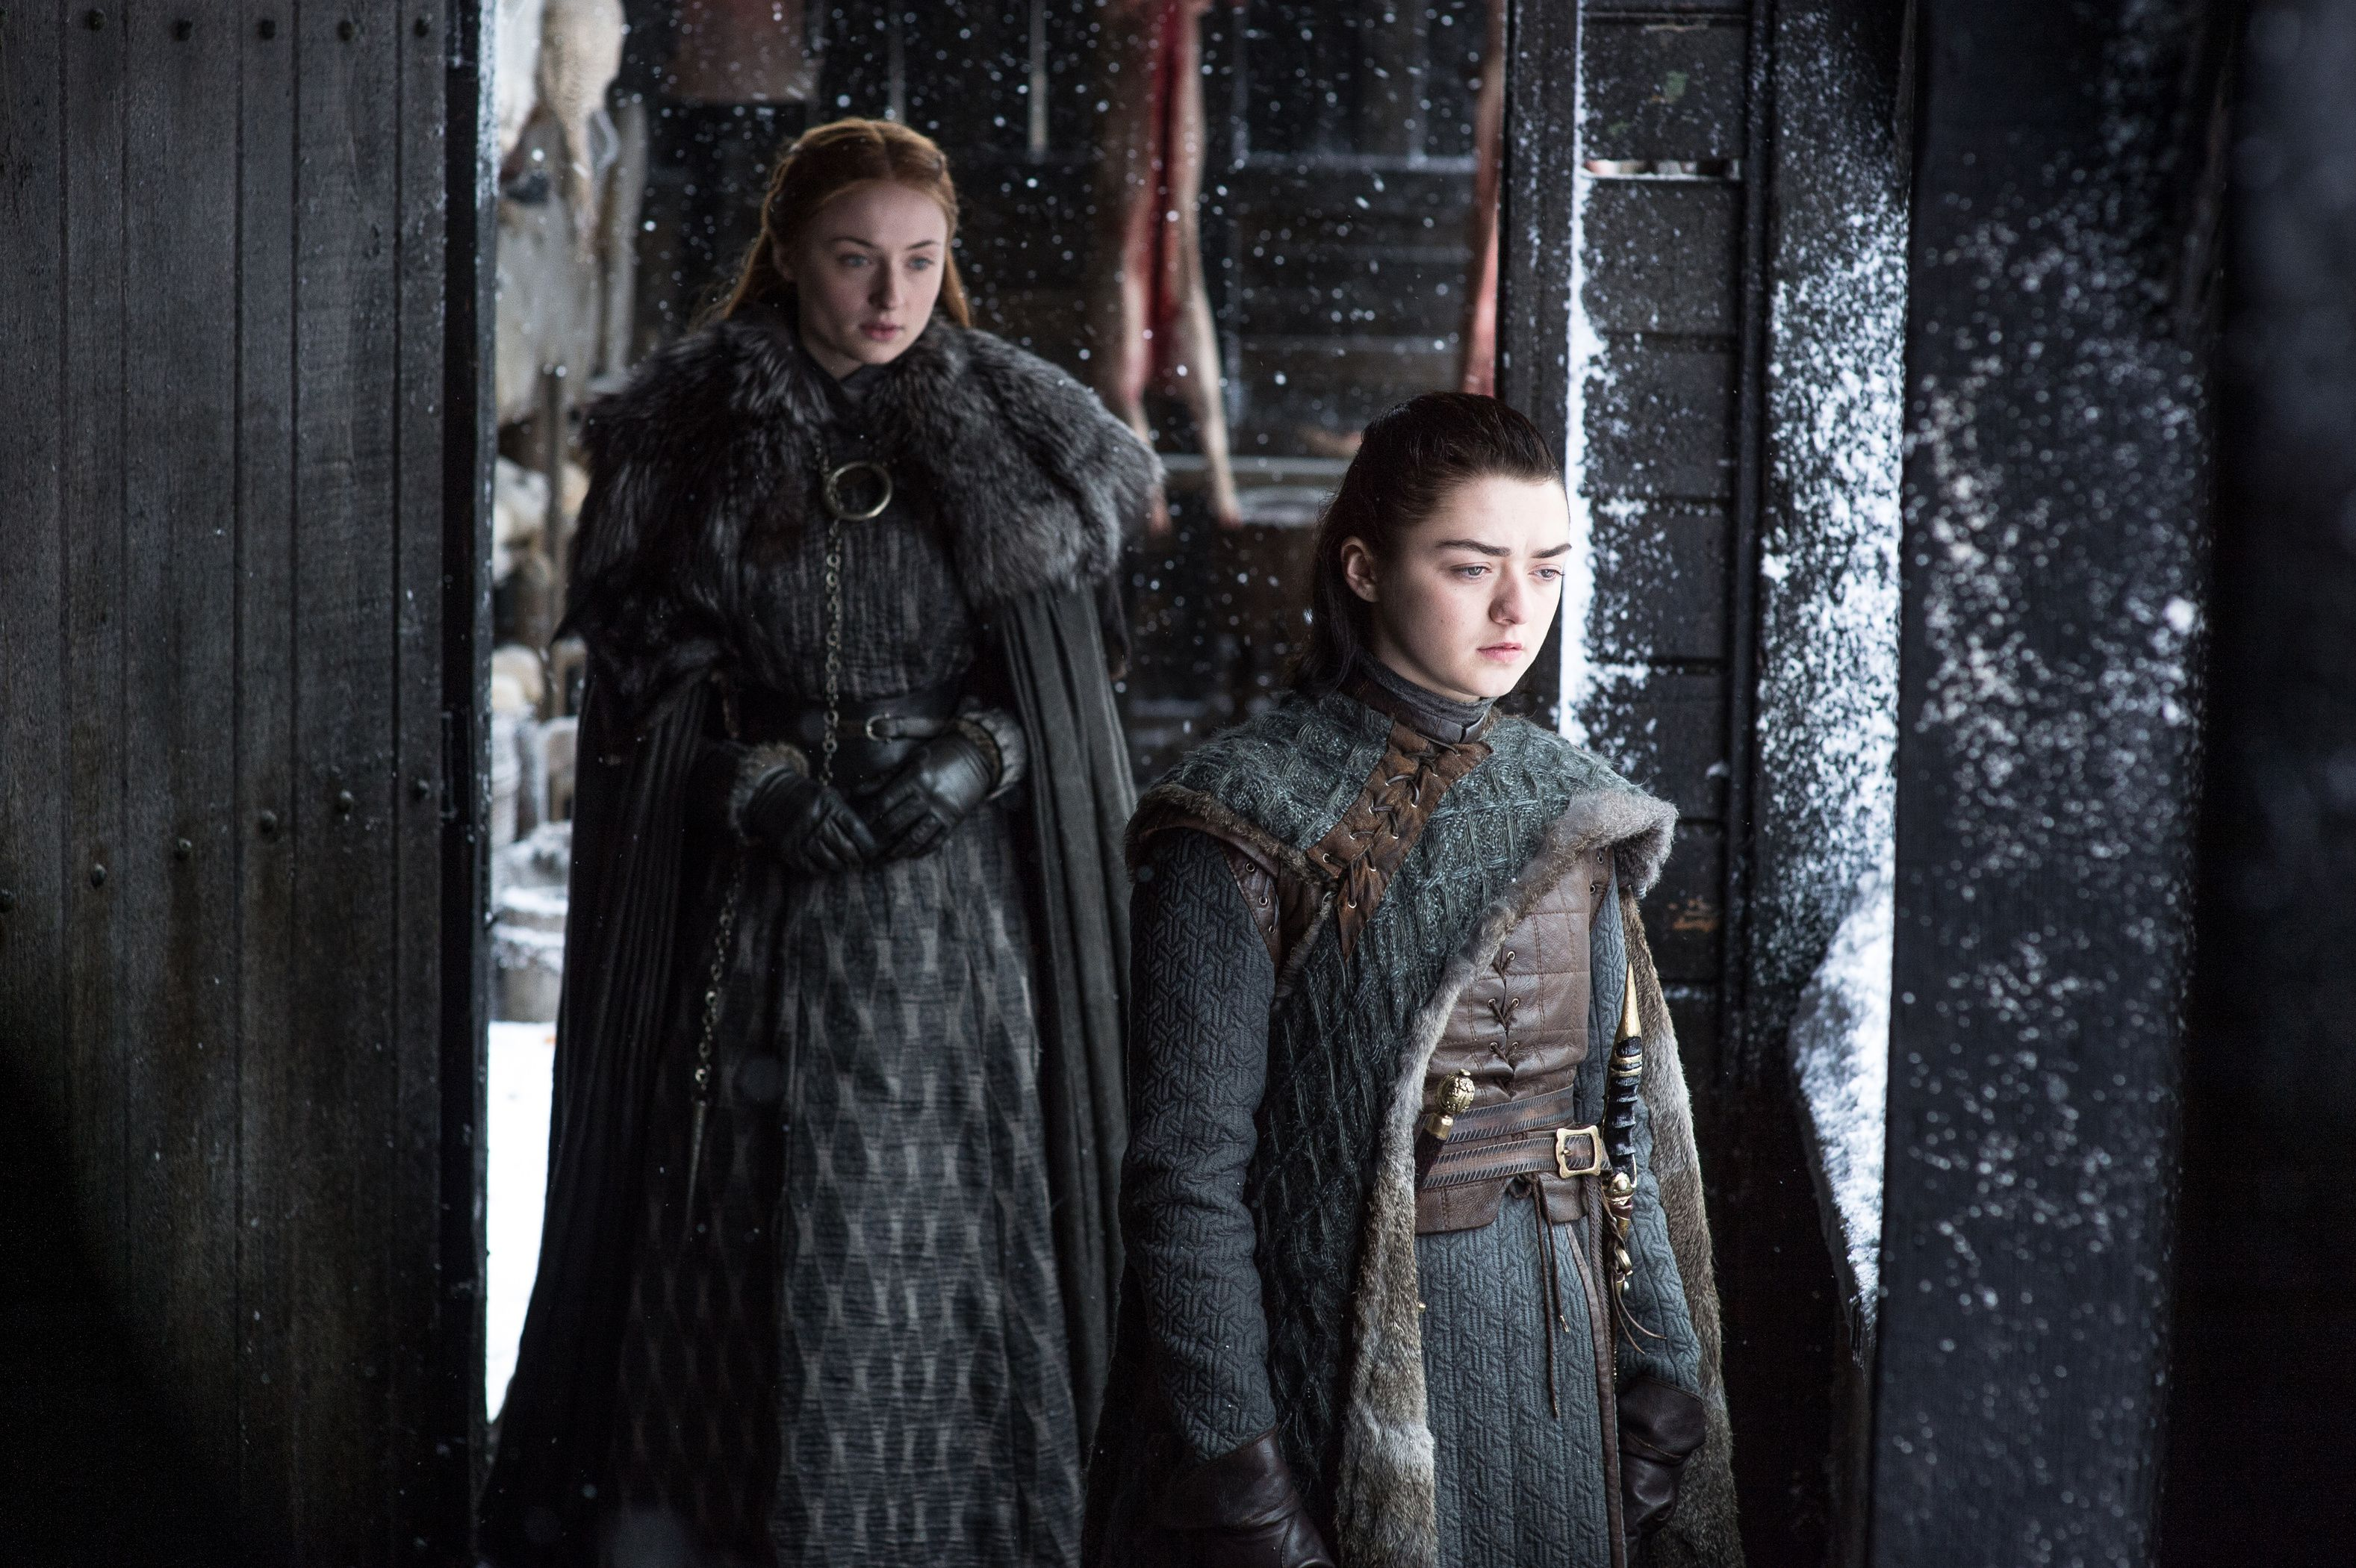 What Will Arya Stark Do Now Sansa Is Queen of the North?